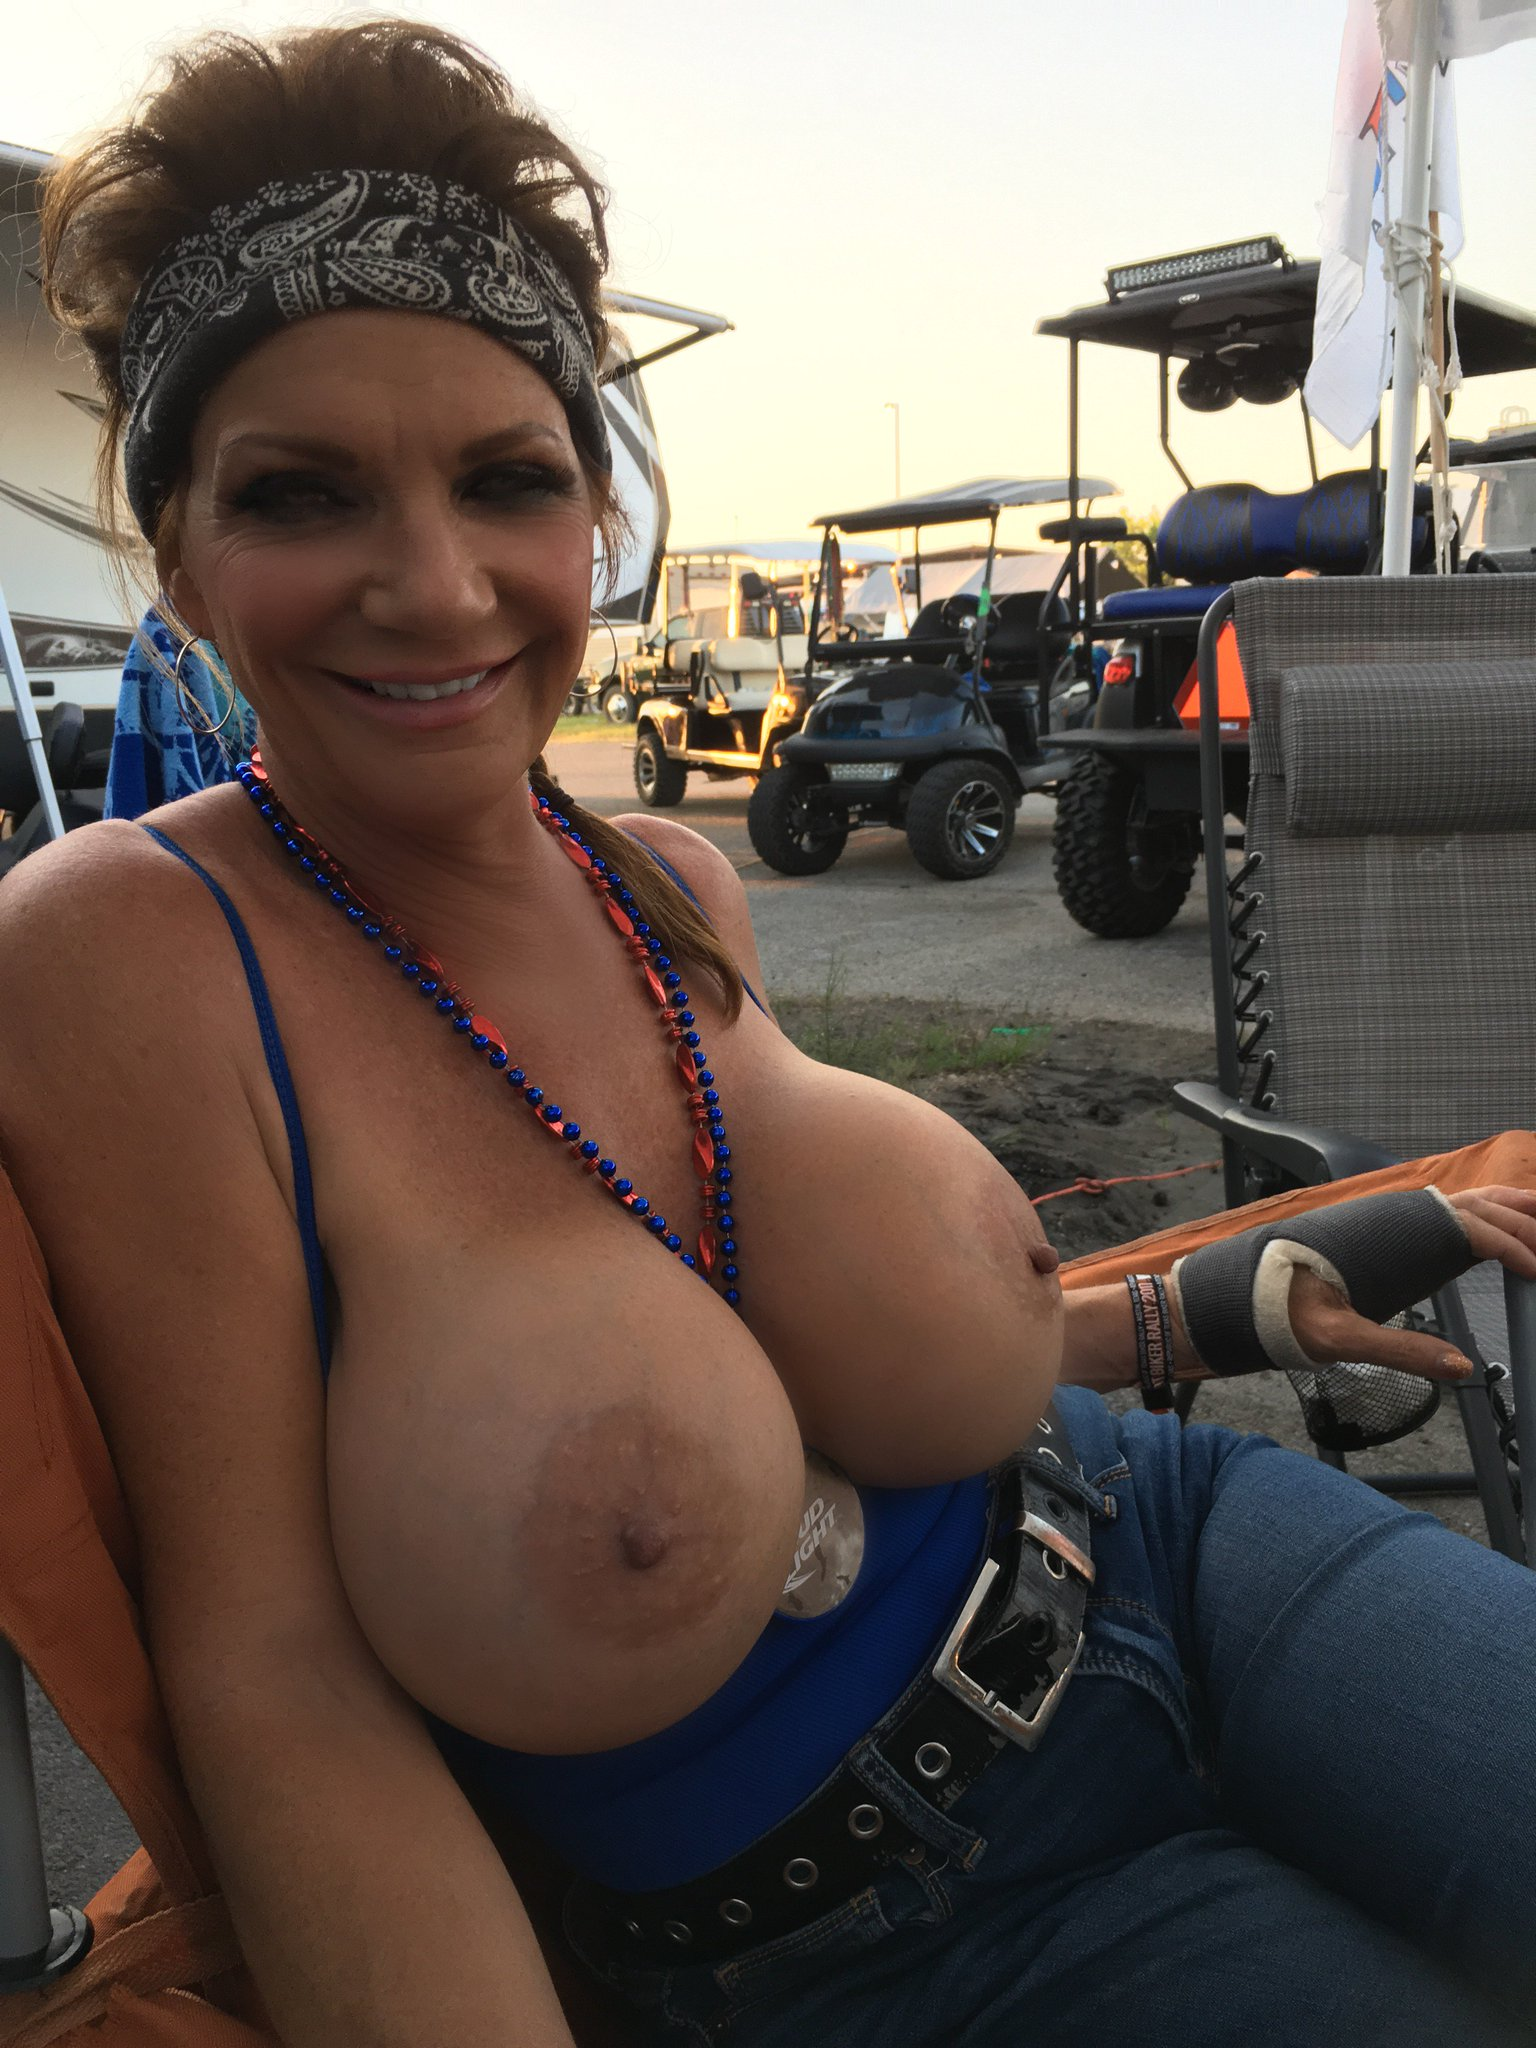 Tits fall out of top